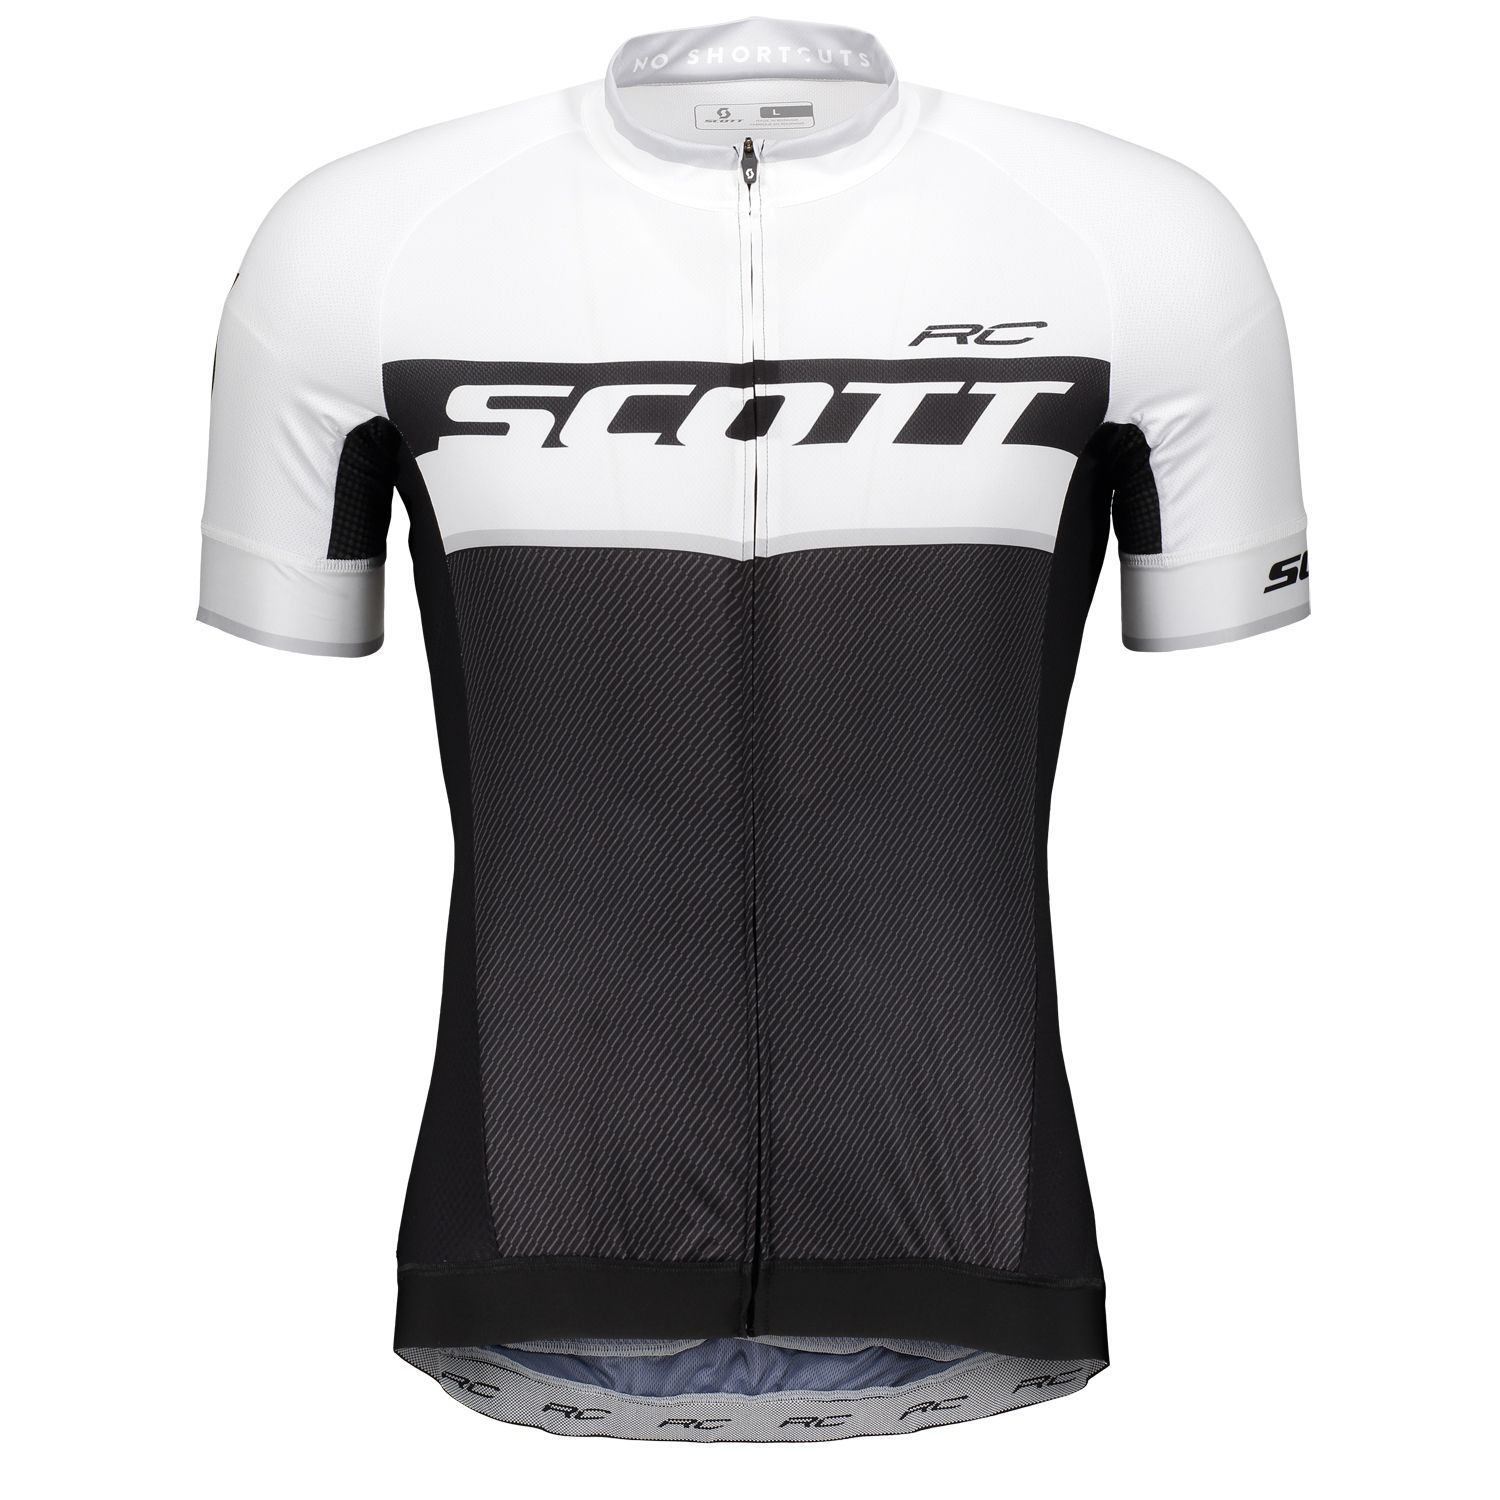 c086481e2 ... cycling jersey black white (264821). Previous